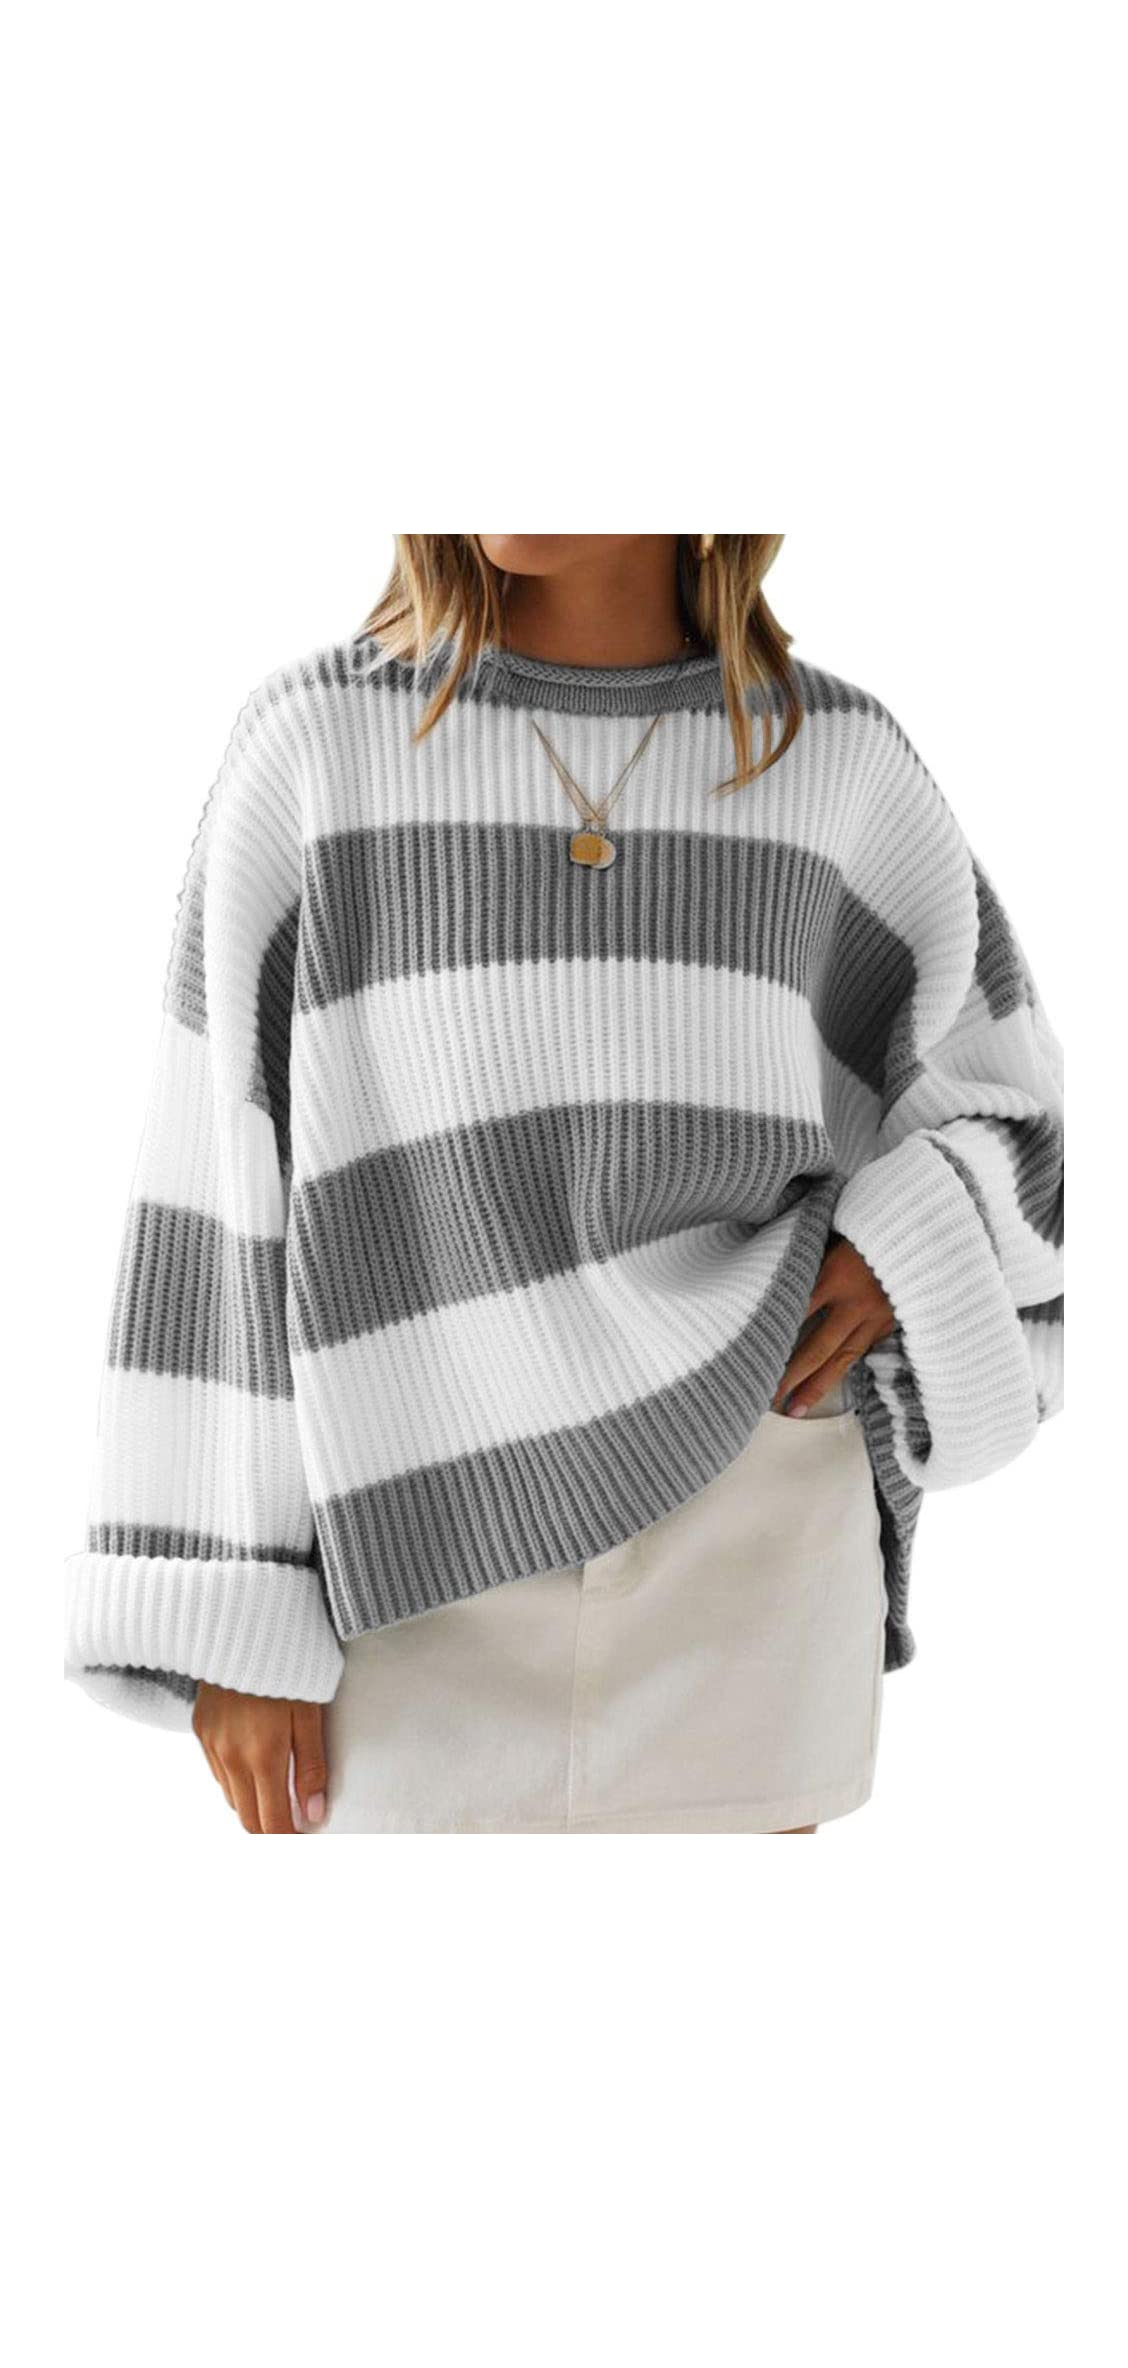 Women's Color Block Striped Oversized Sweaters Long Sleeve